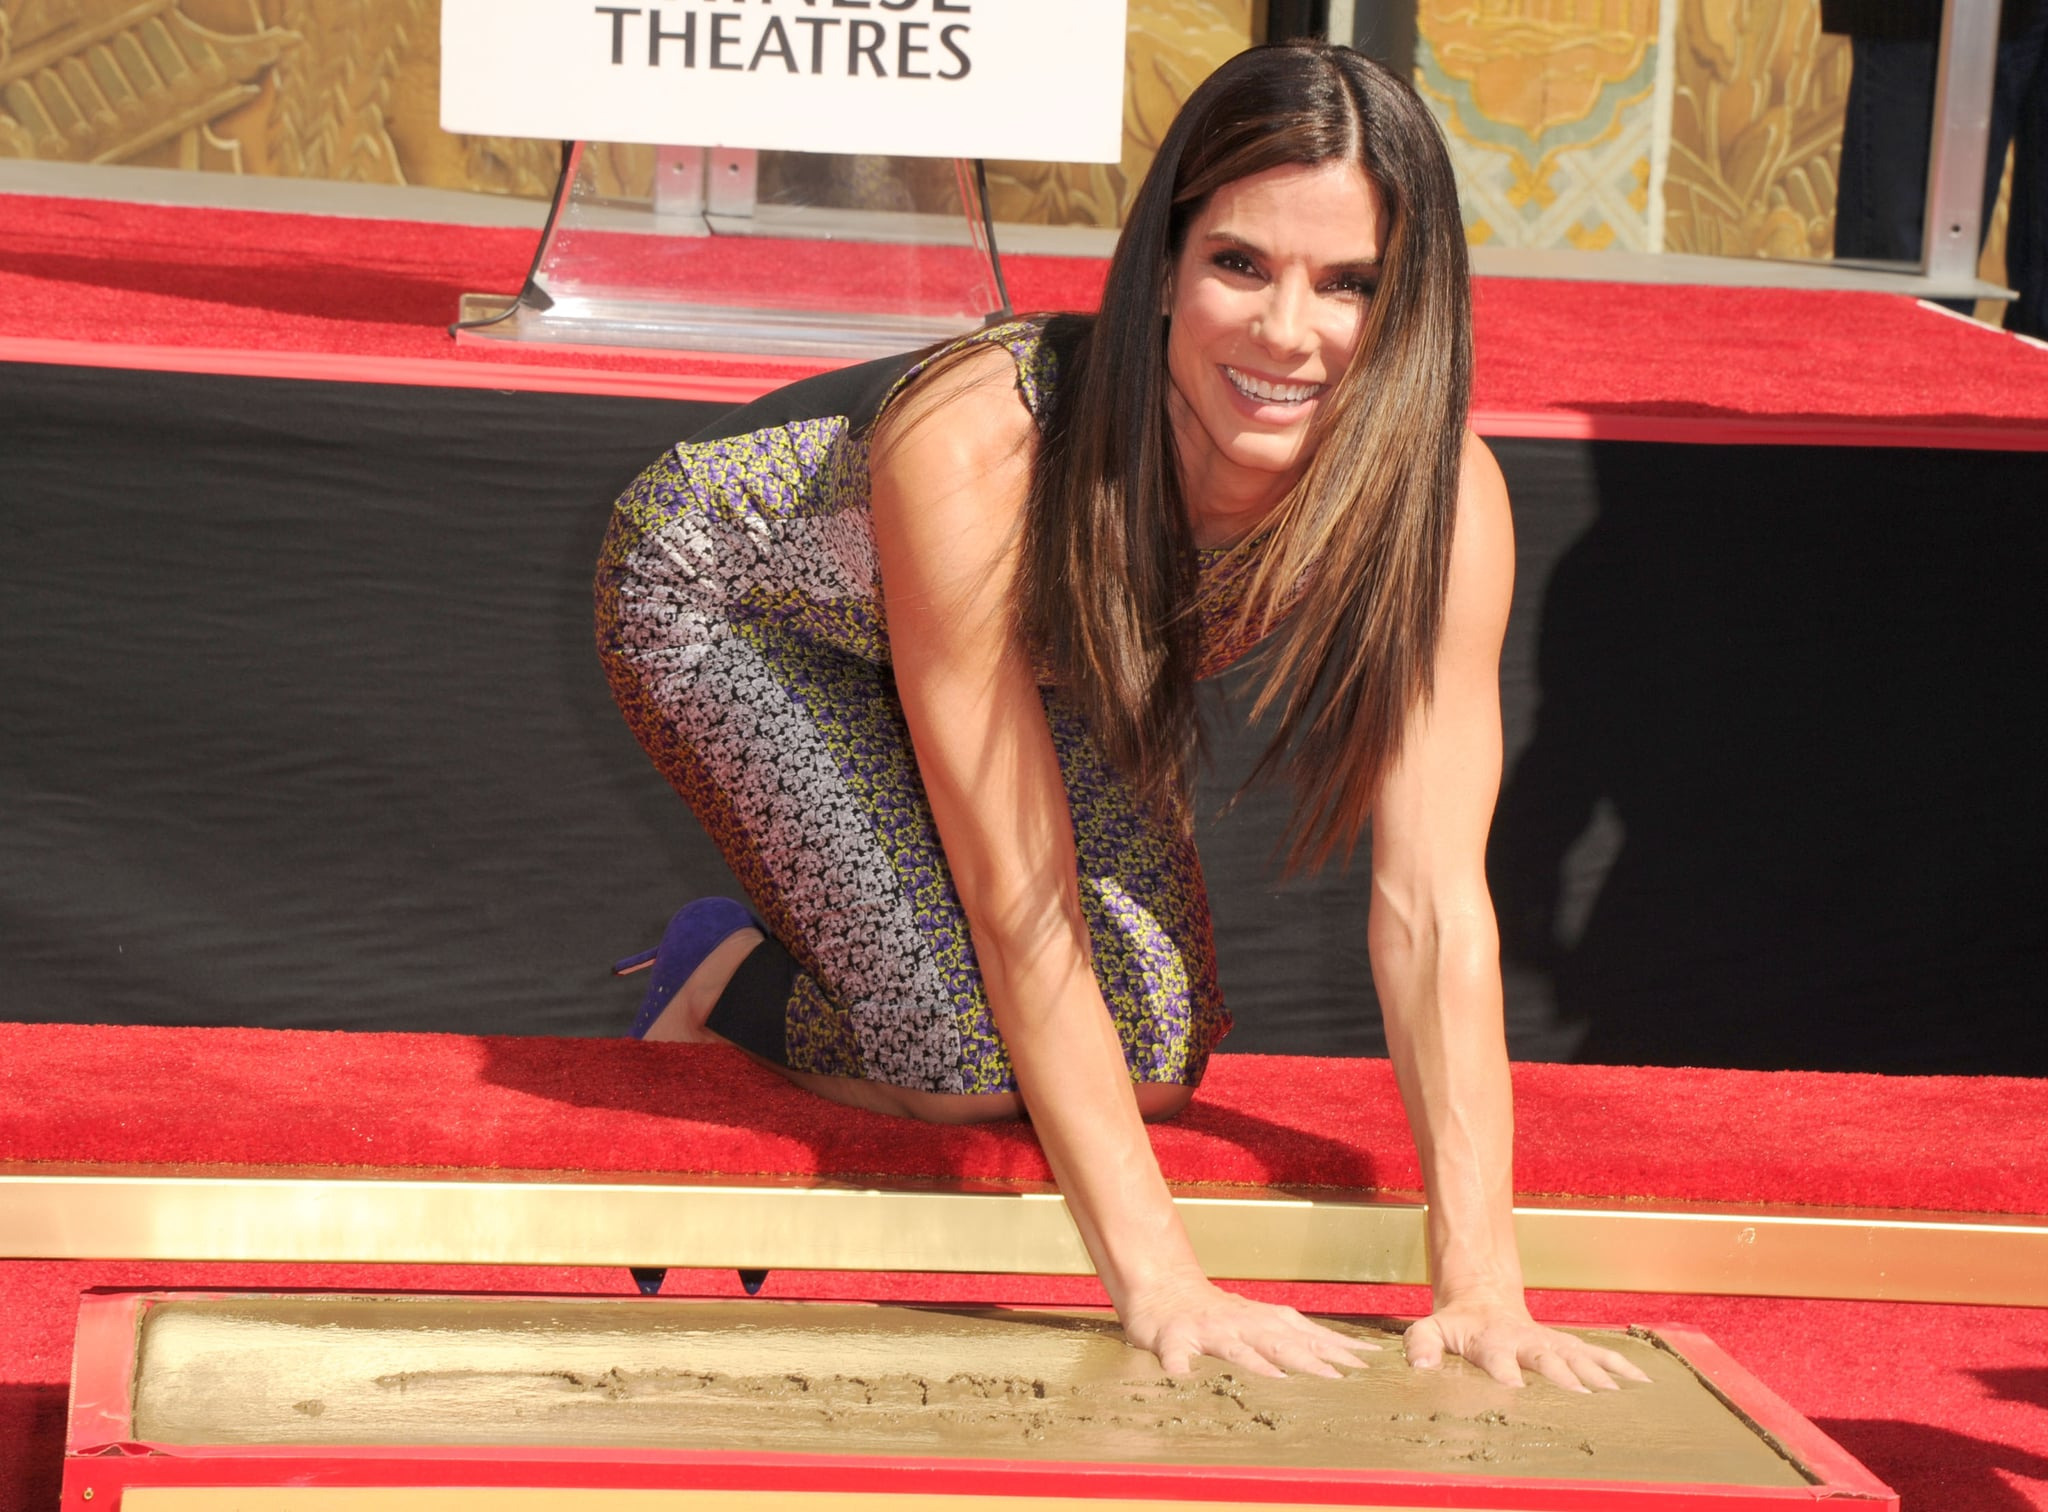 Sandra Bullock left her mark at the TCL Chinese Theatre.